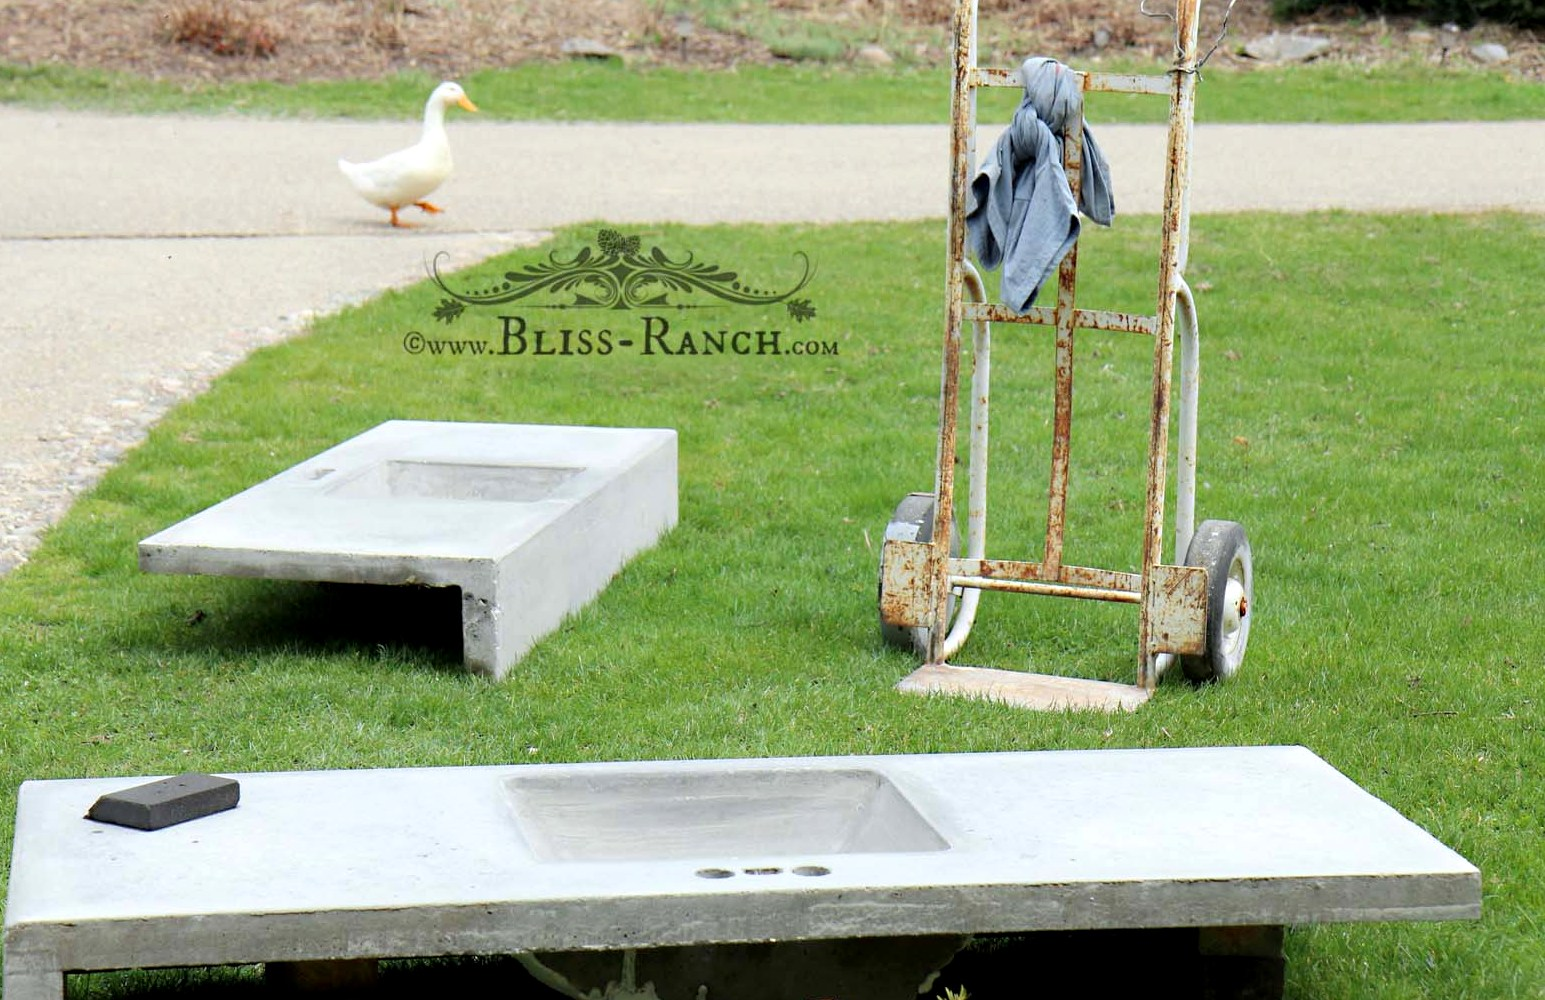 Bliss Ranch Concrete Sinks In A Slurry